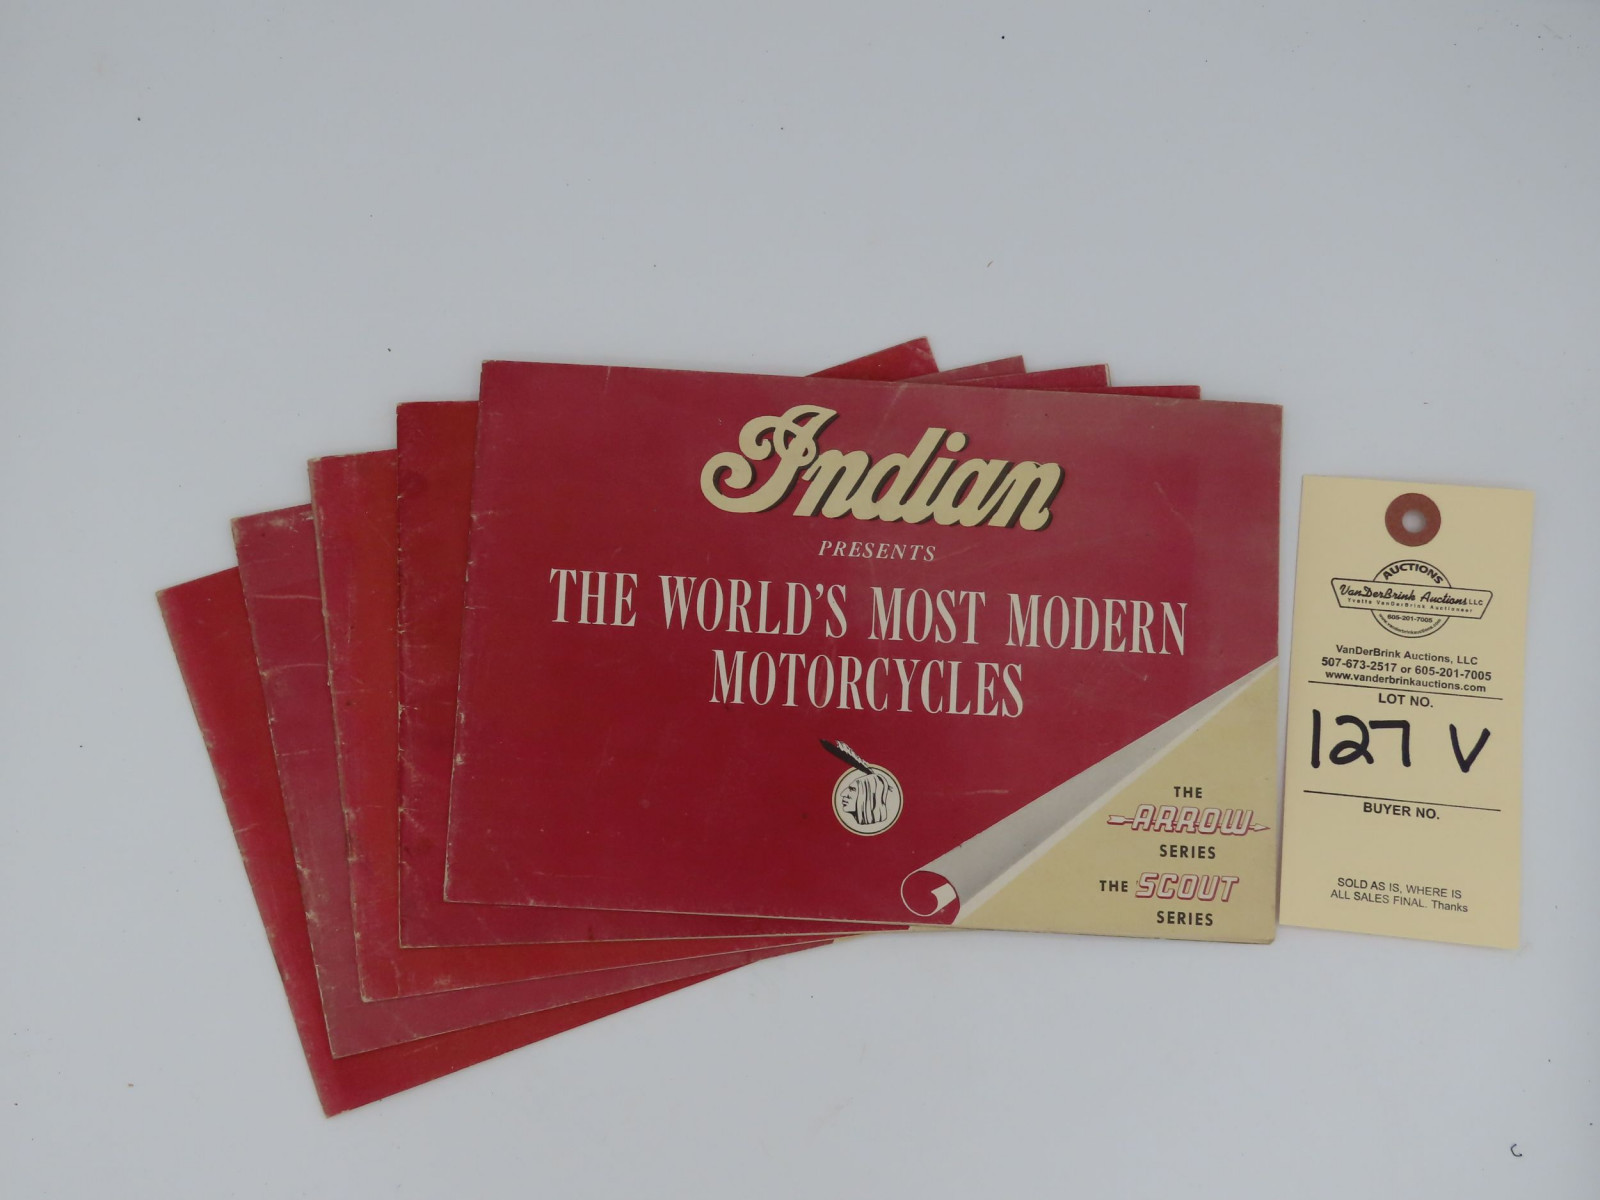 Indian Presents The World's Most Modern Motorcycles dealer manual - Image 1